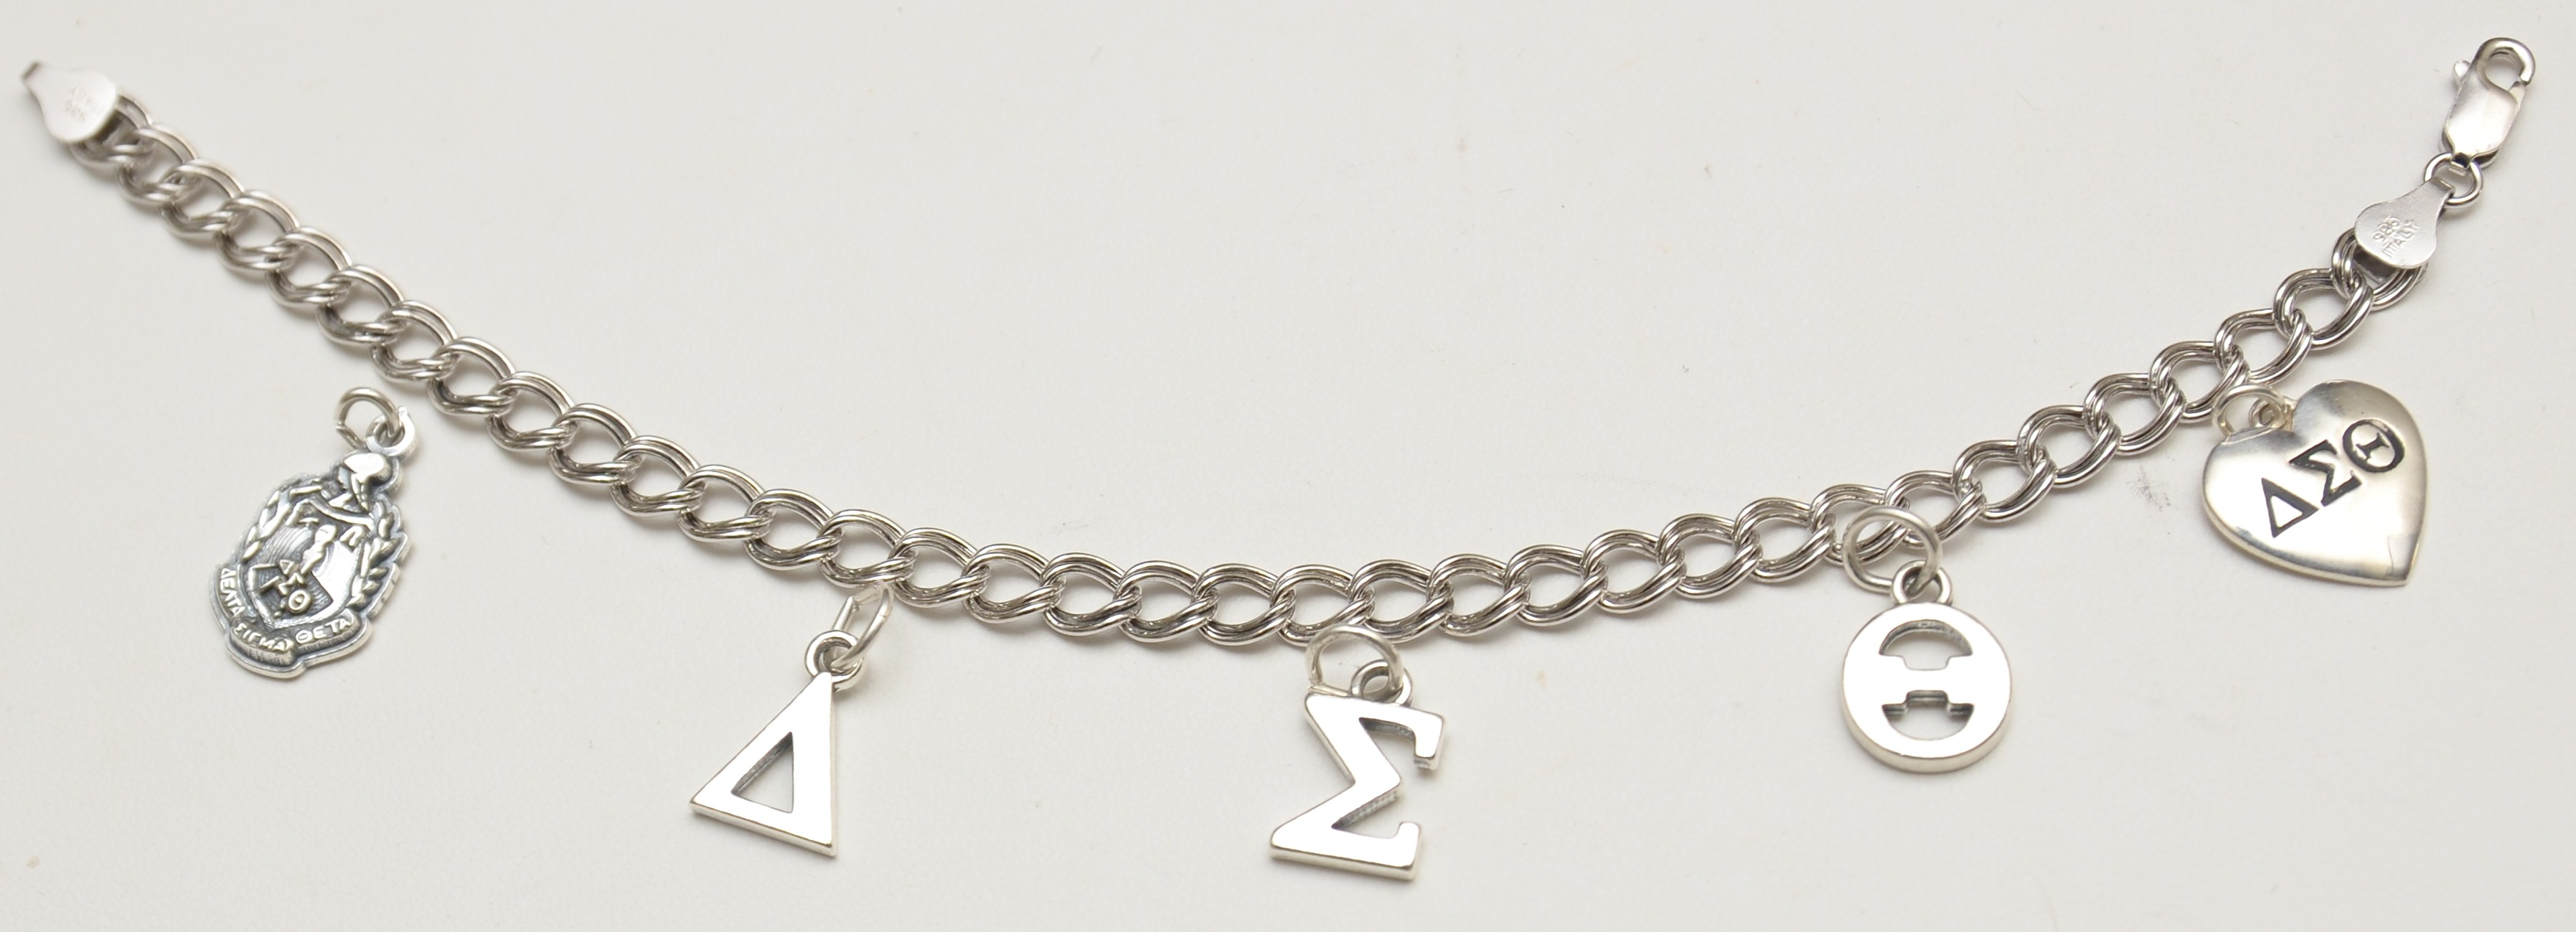 Delta Sigma Theta Sterling Silver Charm Bracelet 5 Charms JLM